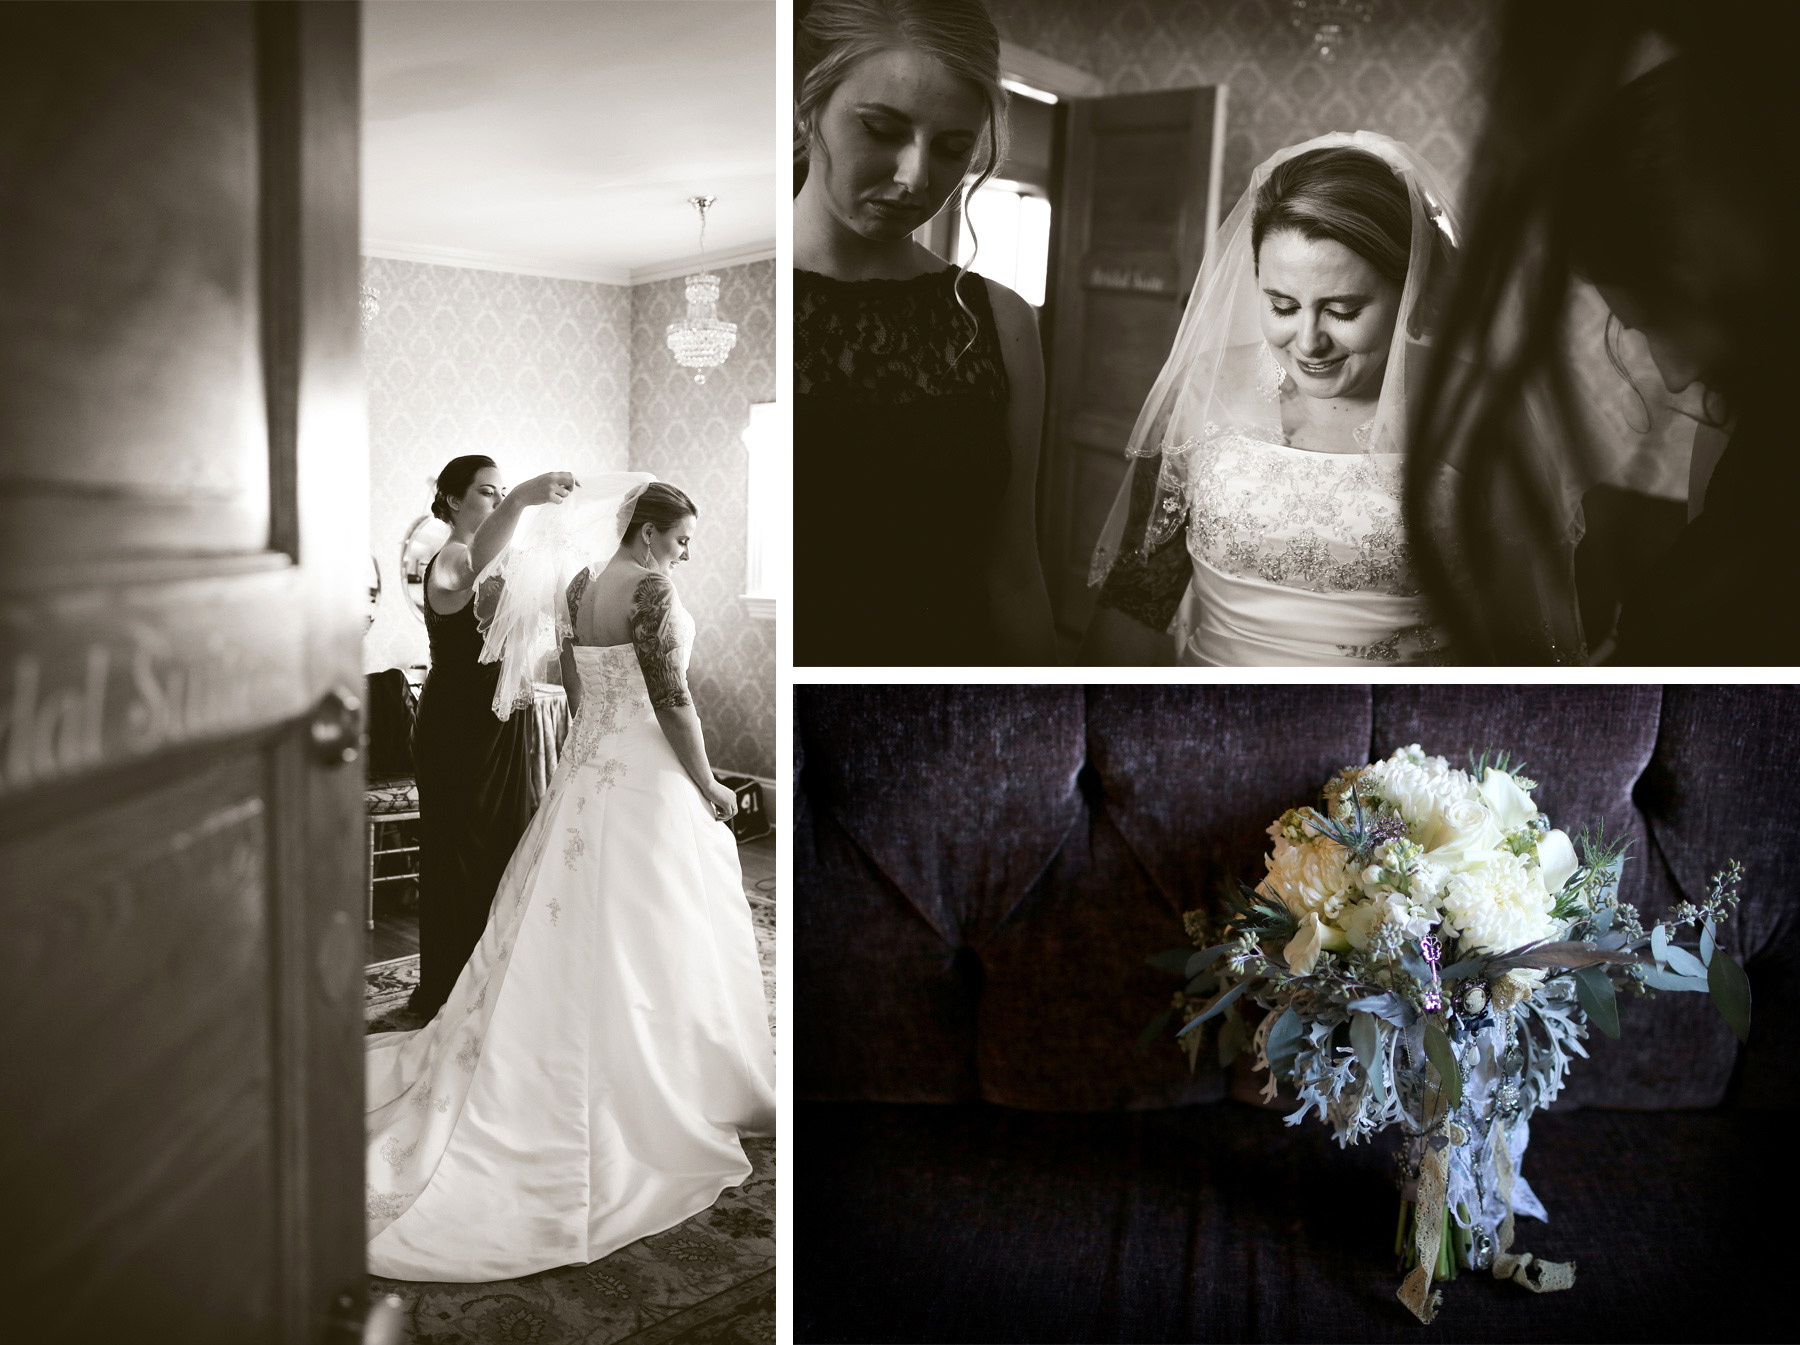 02-Minneapolis-Minnesota-Wedding-Photography-by-Vick-Photography-Semple-Mansion-Bridal-Suite-Ariel-and-Jared.jpg